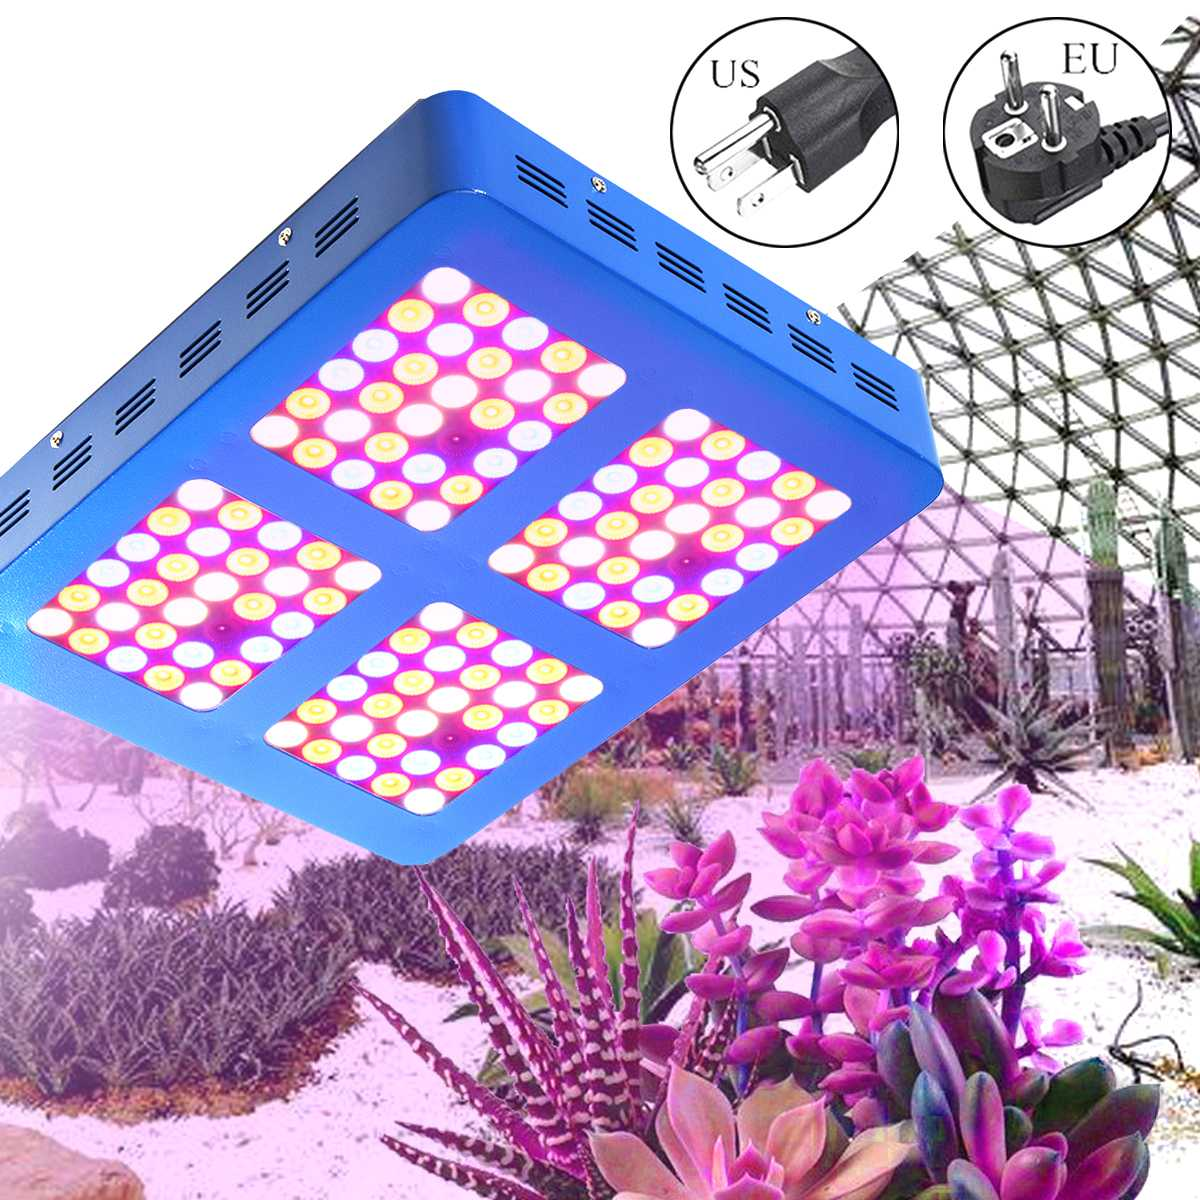 Smuxi LED Grow Light 600W Full Spectrum Hydroponics For Indoor Greenhouse Grow Tent Plants Grow LED Light Succulents Bloom jiernuo led grow light 600w mini lamps for plants grow led full spectrum fitolampa for greenhouse hydroponics system aquarium